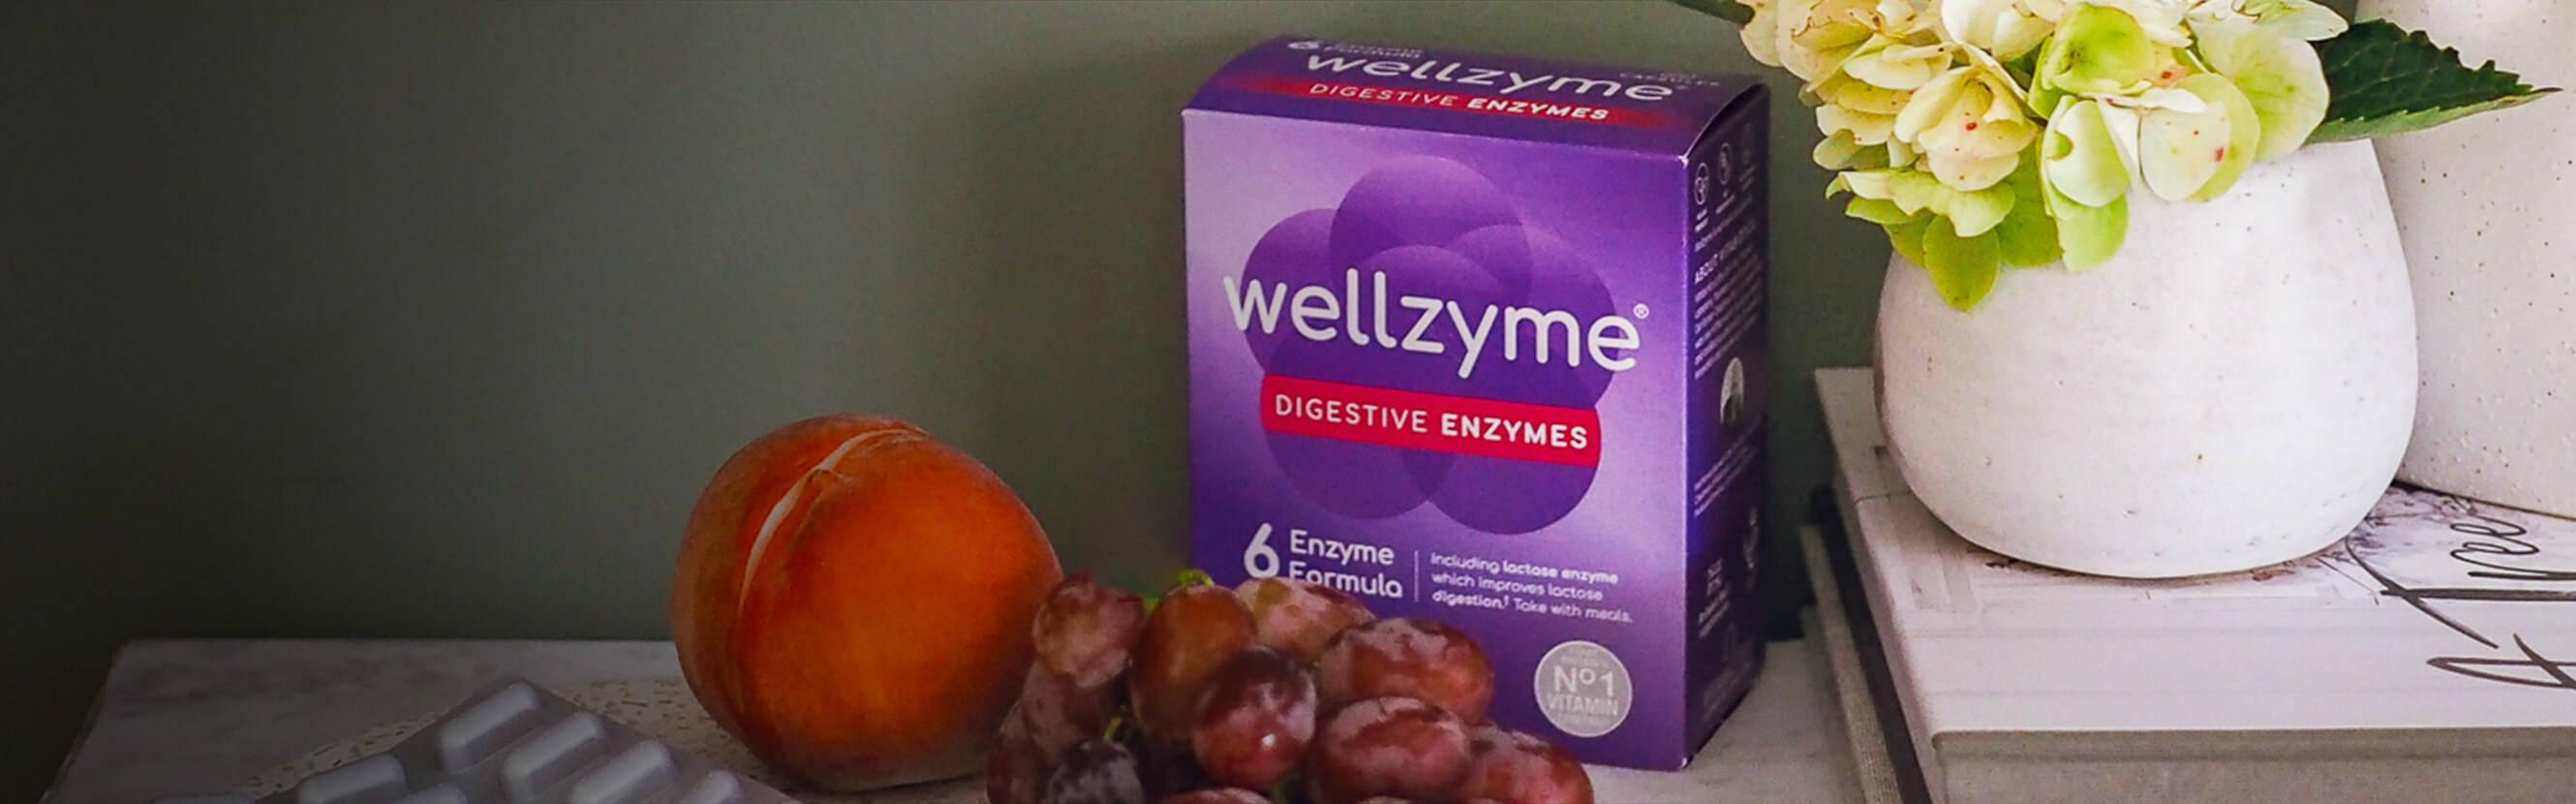 Good digestion is all about balance – and, with Wellzyme, we've taken a balanced approach to formulation. Every enzyme has been chosen for a specific purpose, including lactase enzyme which improves lactose digestion.